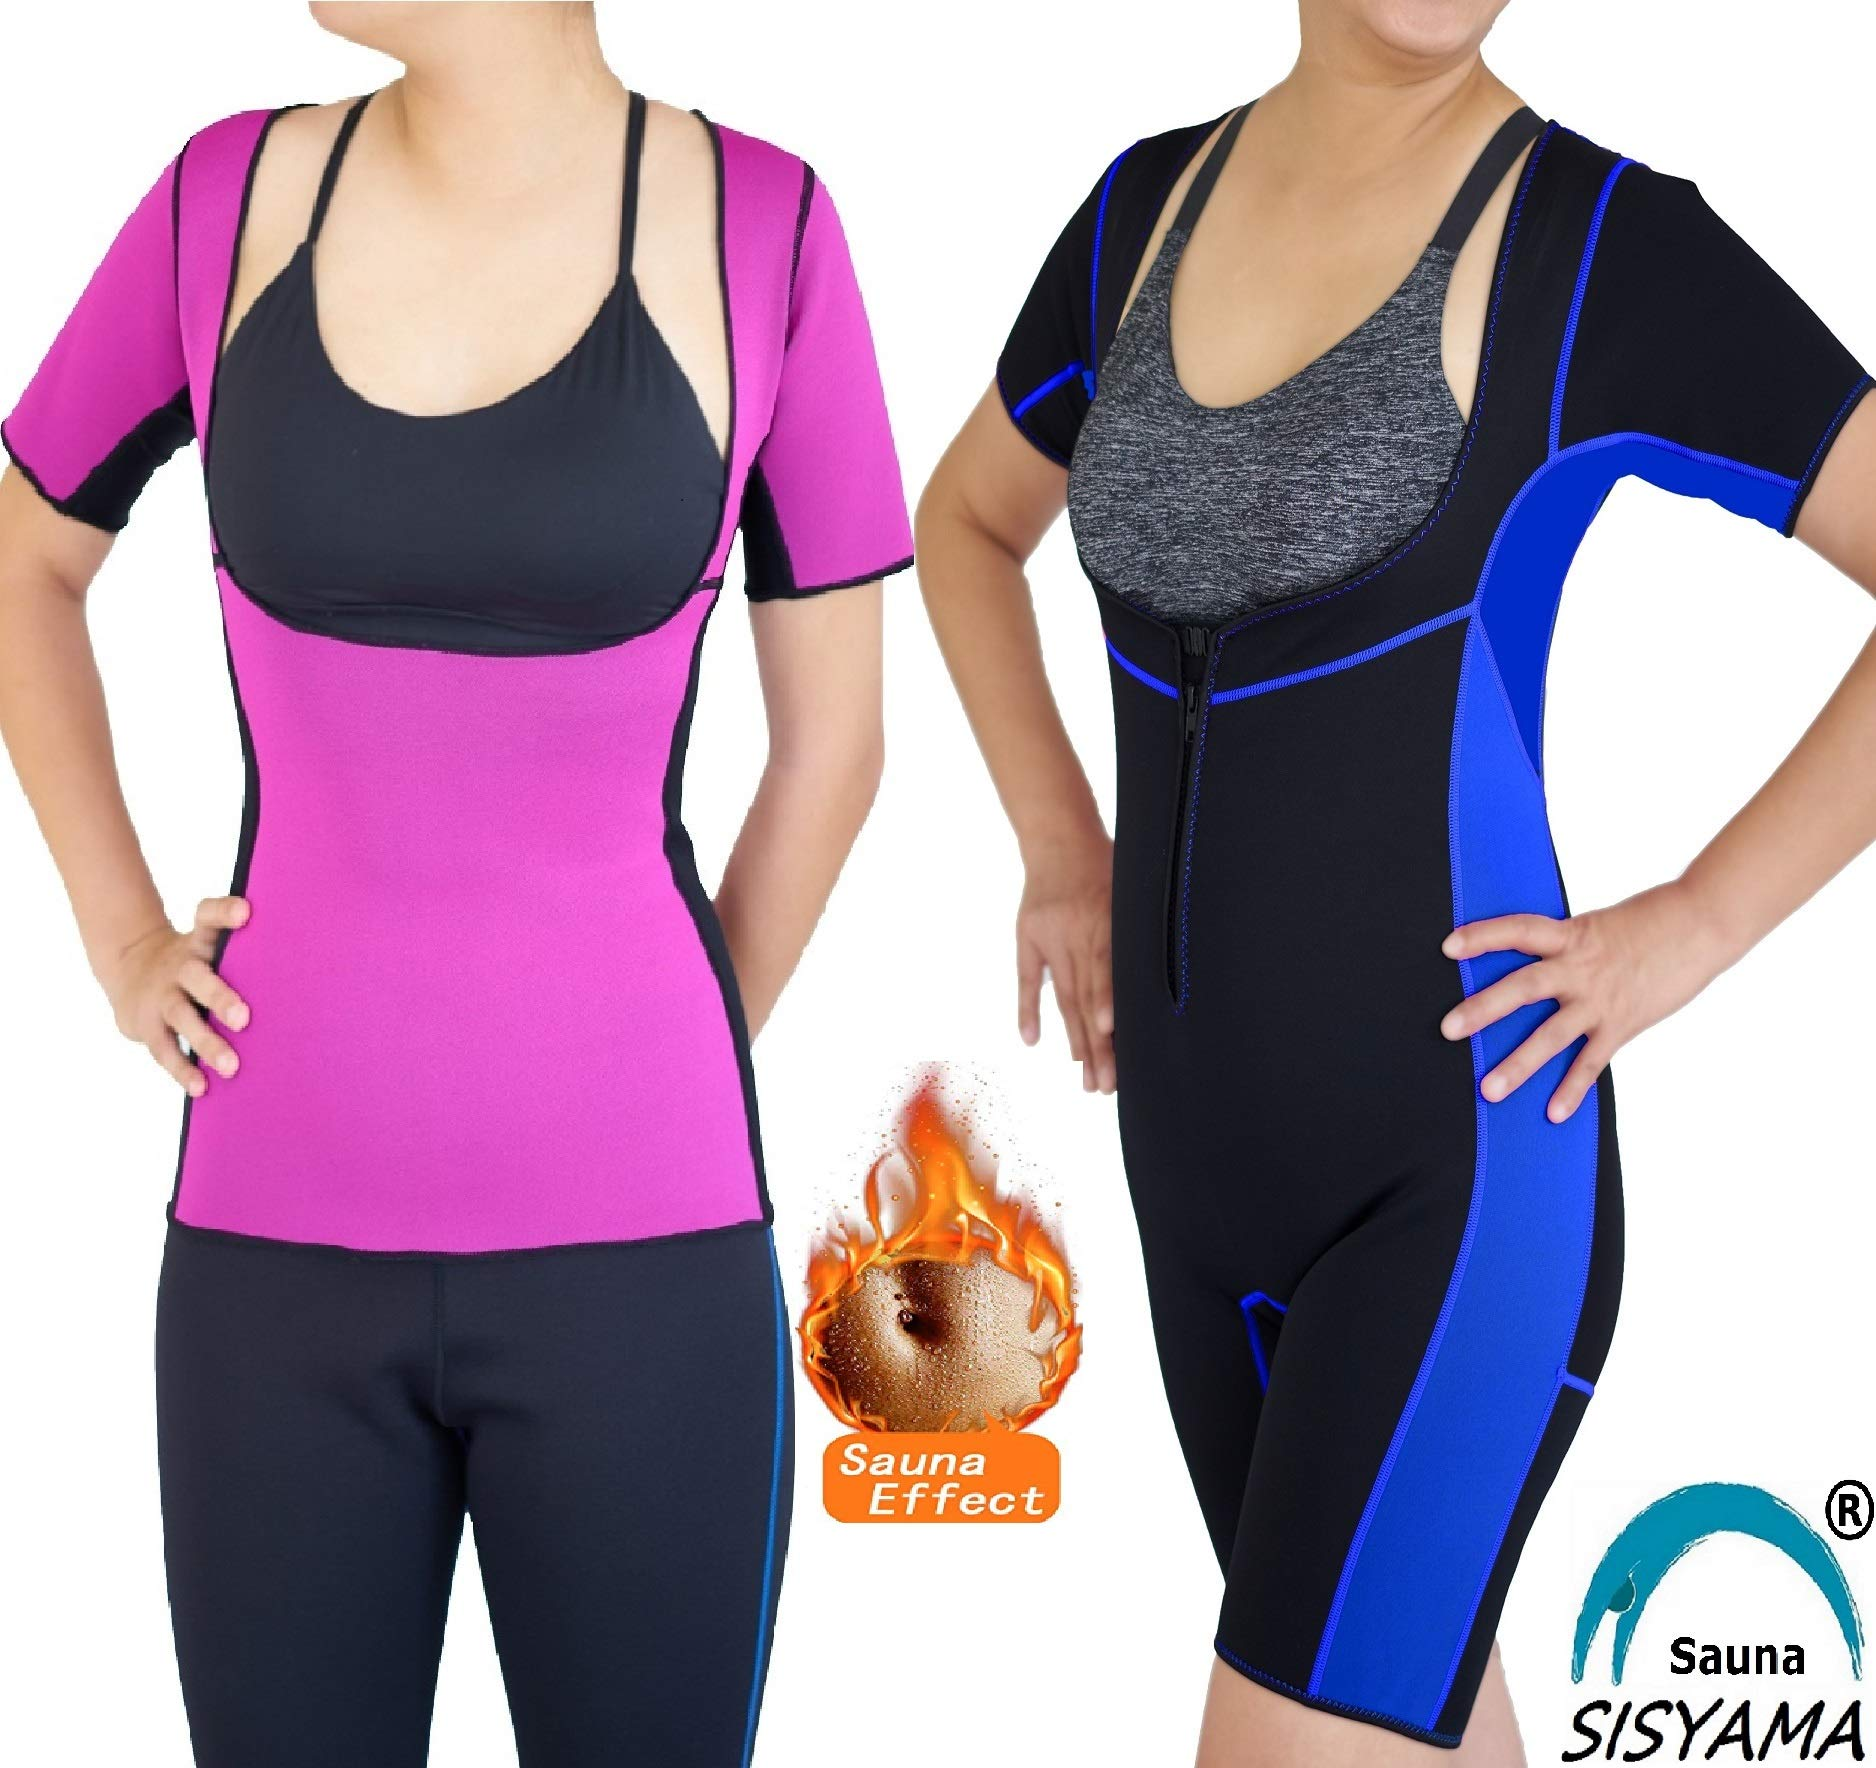 SISYAMA Open-Bust Sauna Hot Suit Weight Loss Workout Exercise Fitness Shaper Shapewear (Aqua/Shortsleeves, Small)